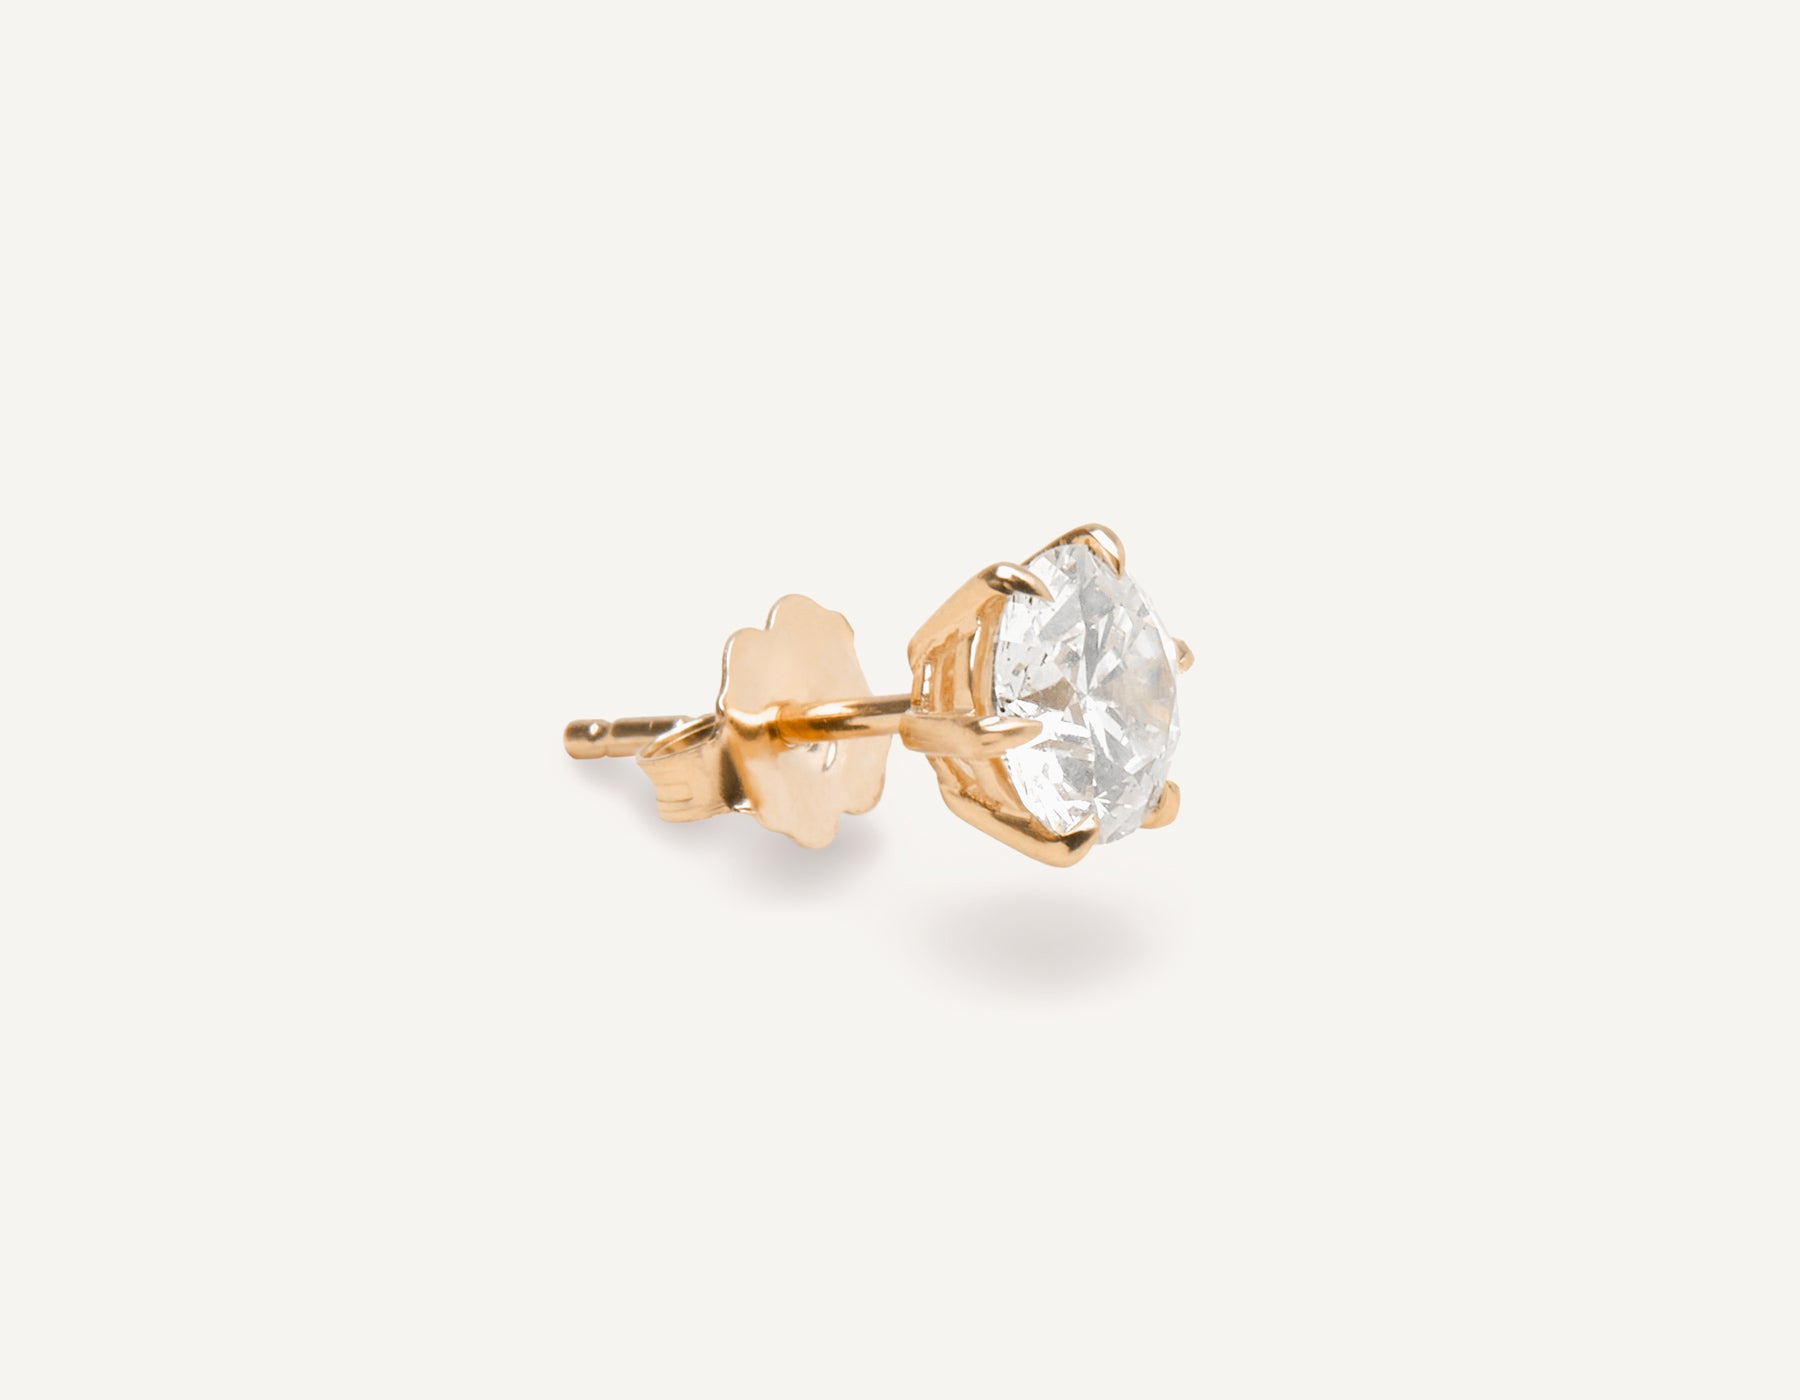 Vrai and oro 1.0 ct Round Brilliant Diamond earring 18k Solid gold classic minimalist, 18K Rose Gold